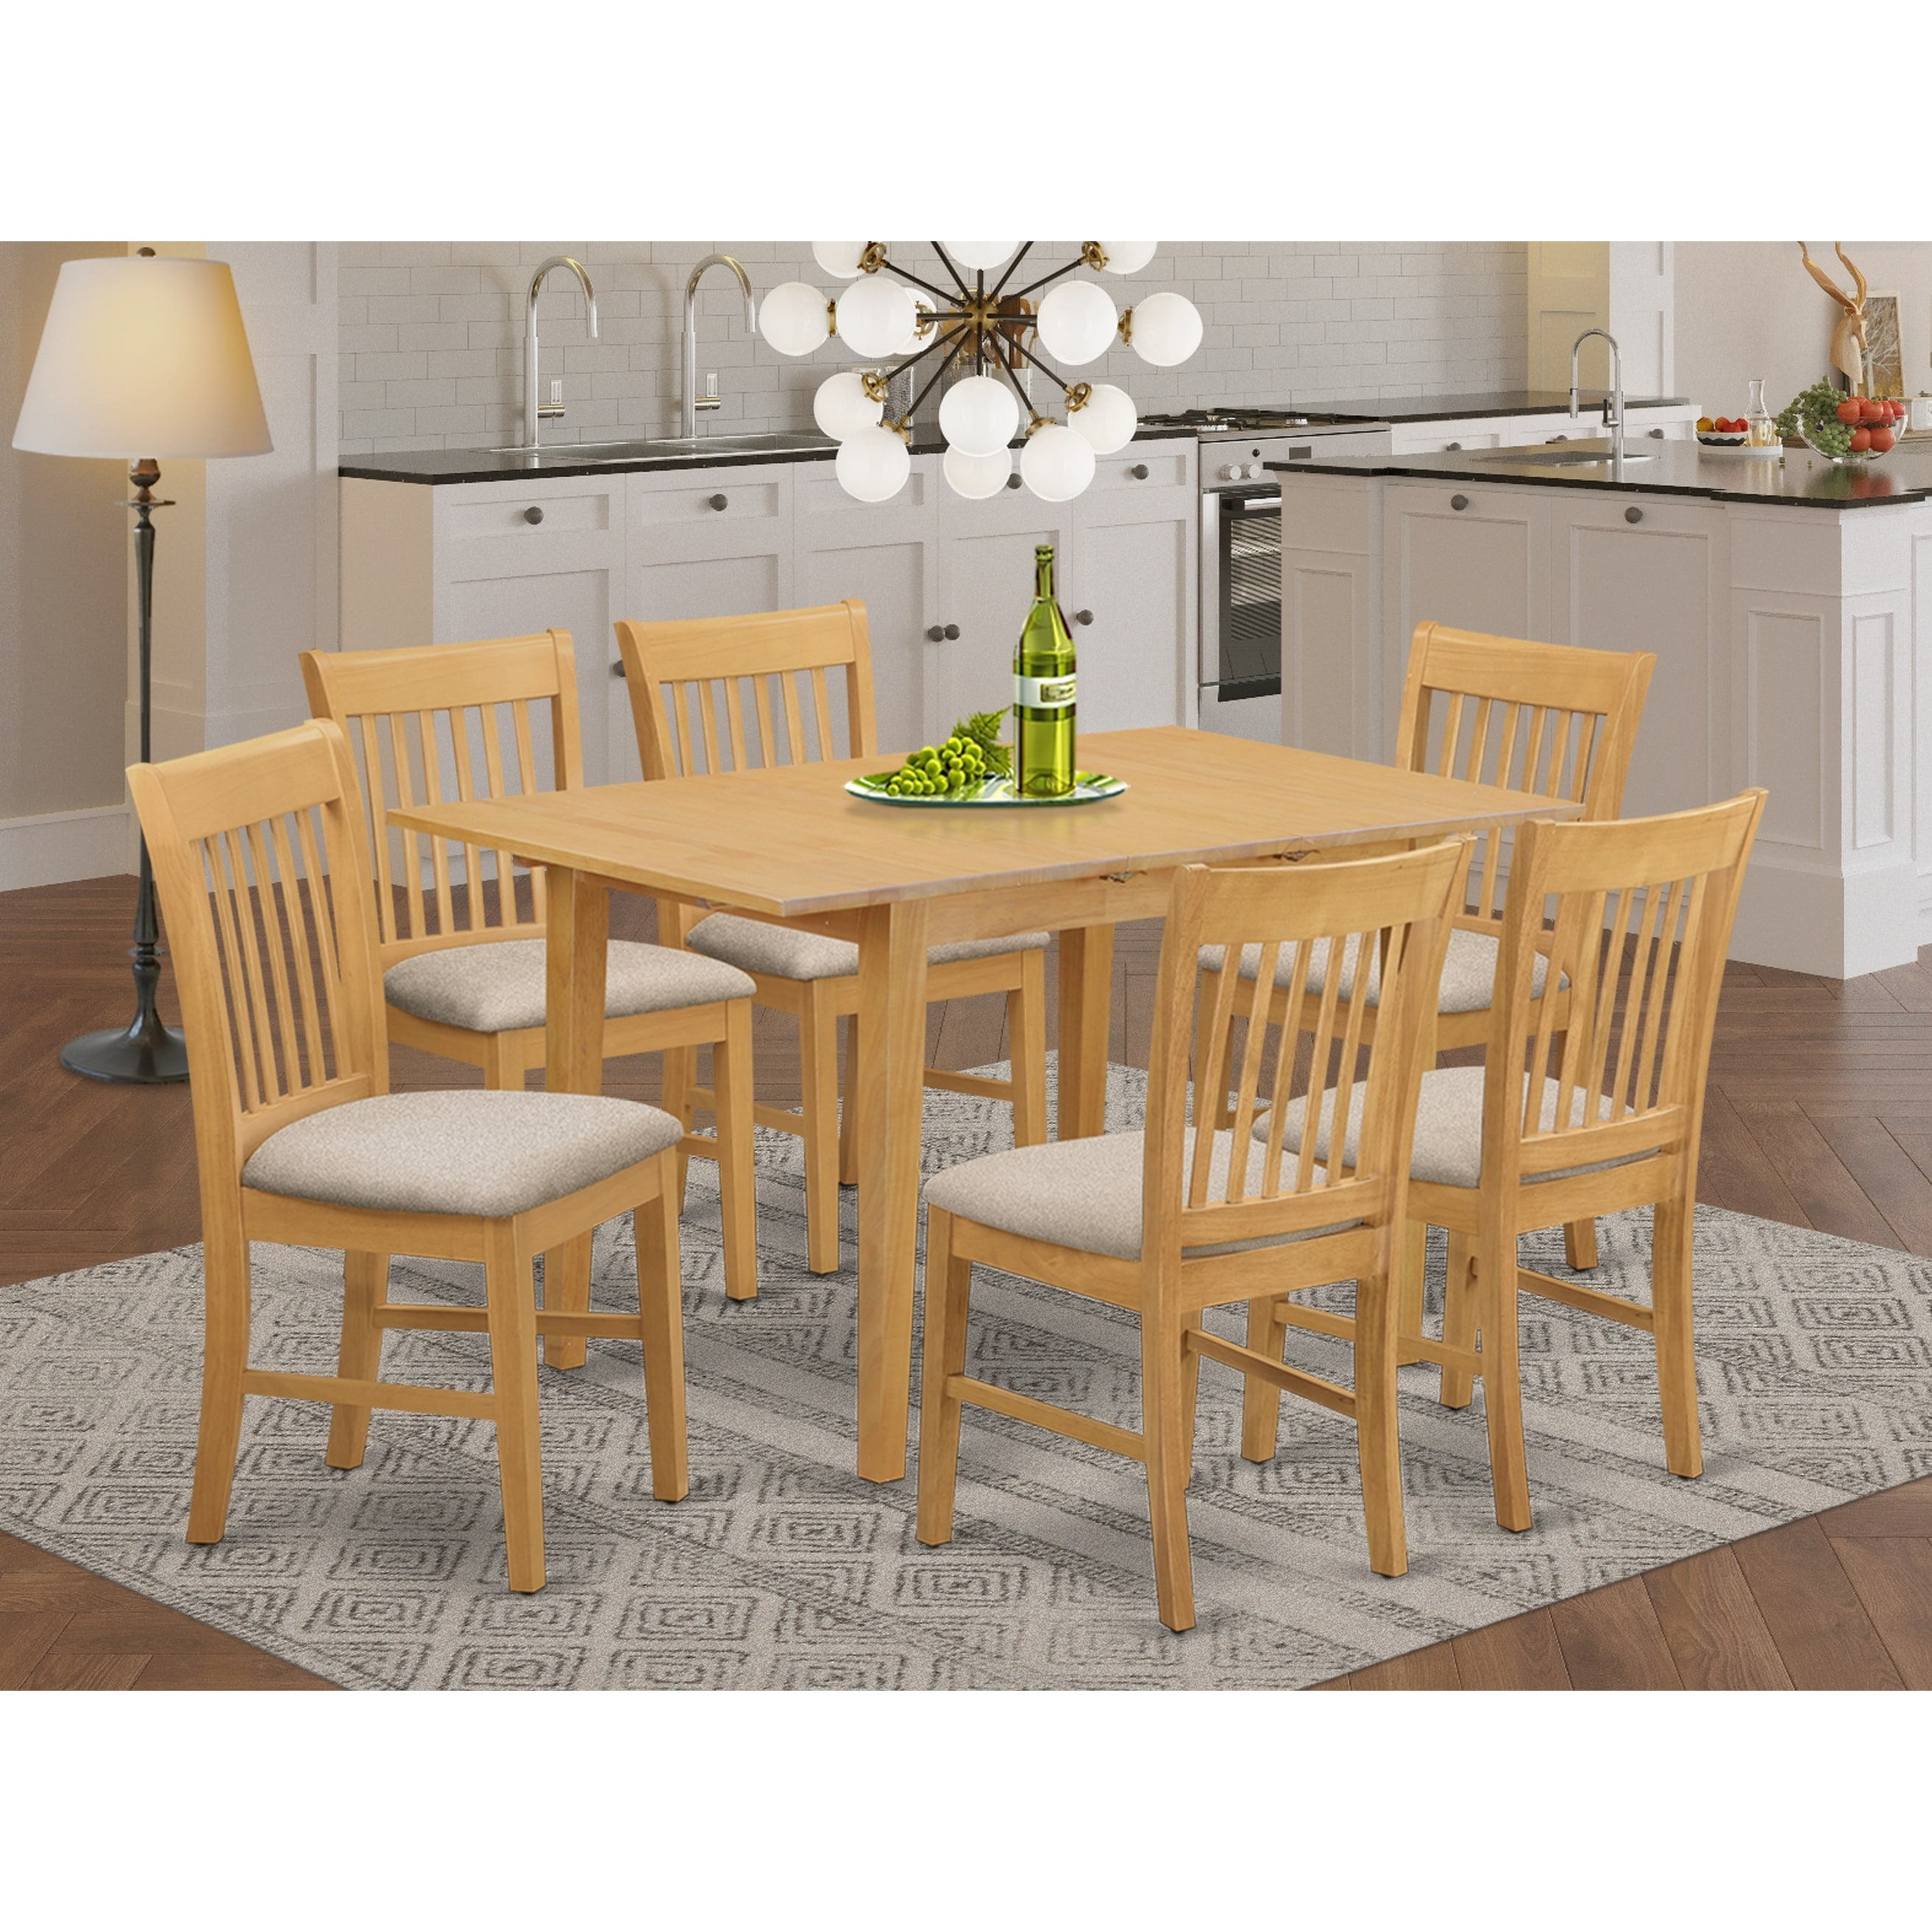 Oak Dinette Table with 4-inch Leaf and 4 Kitchen Chairs Chairs 4-piece  Dining Set